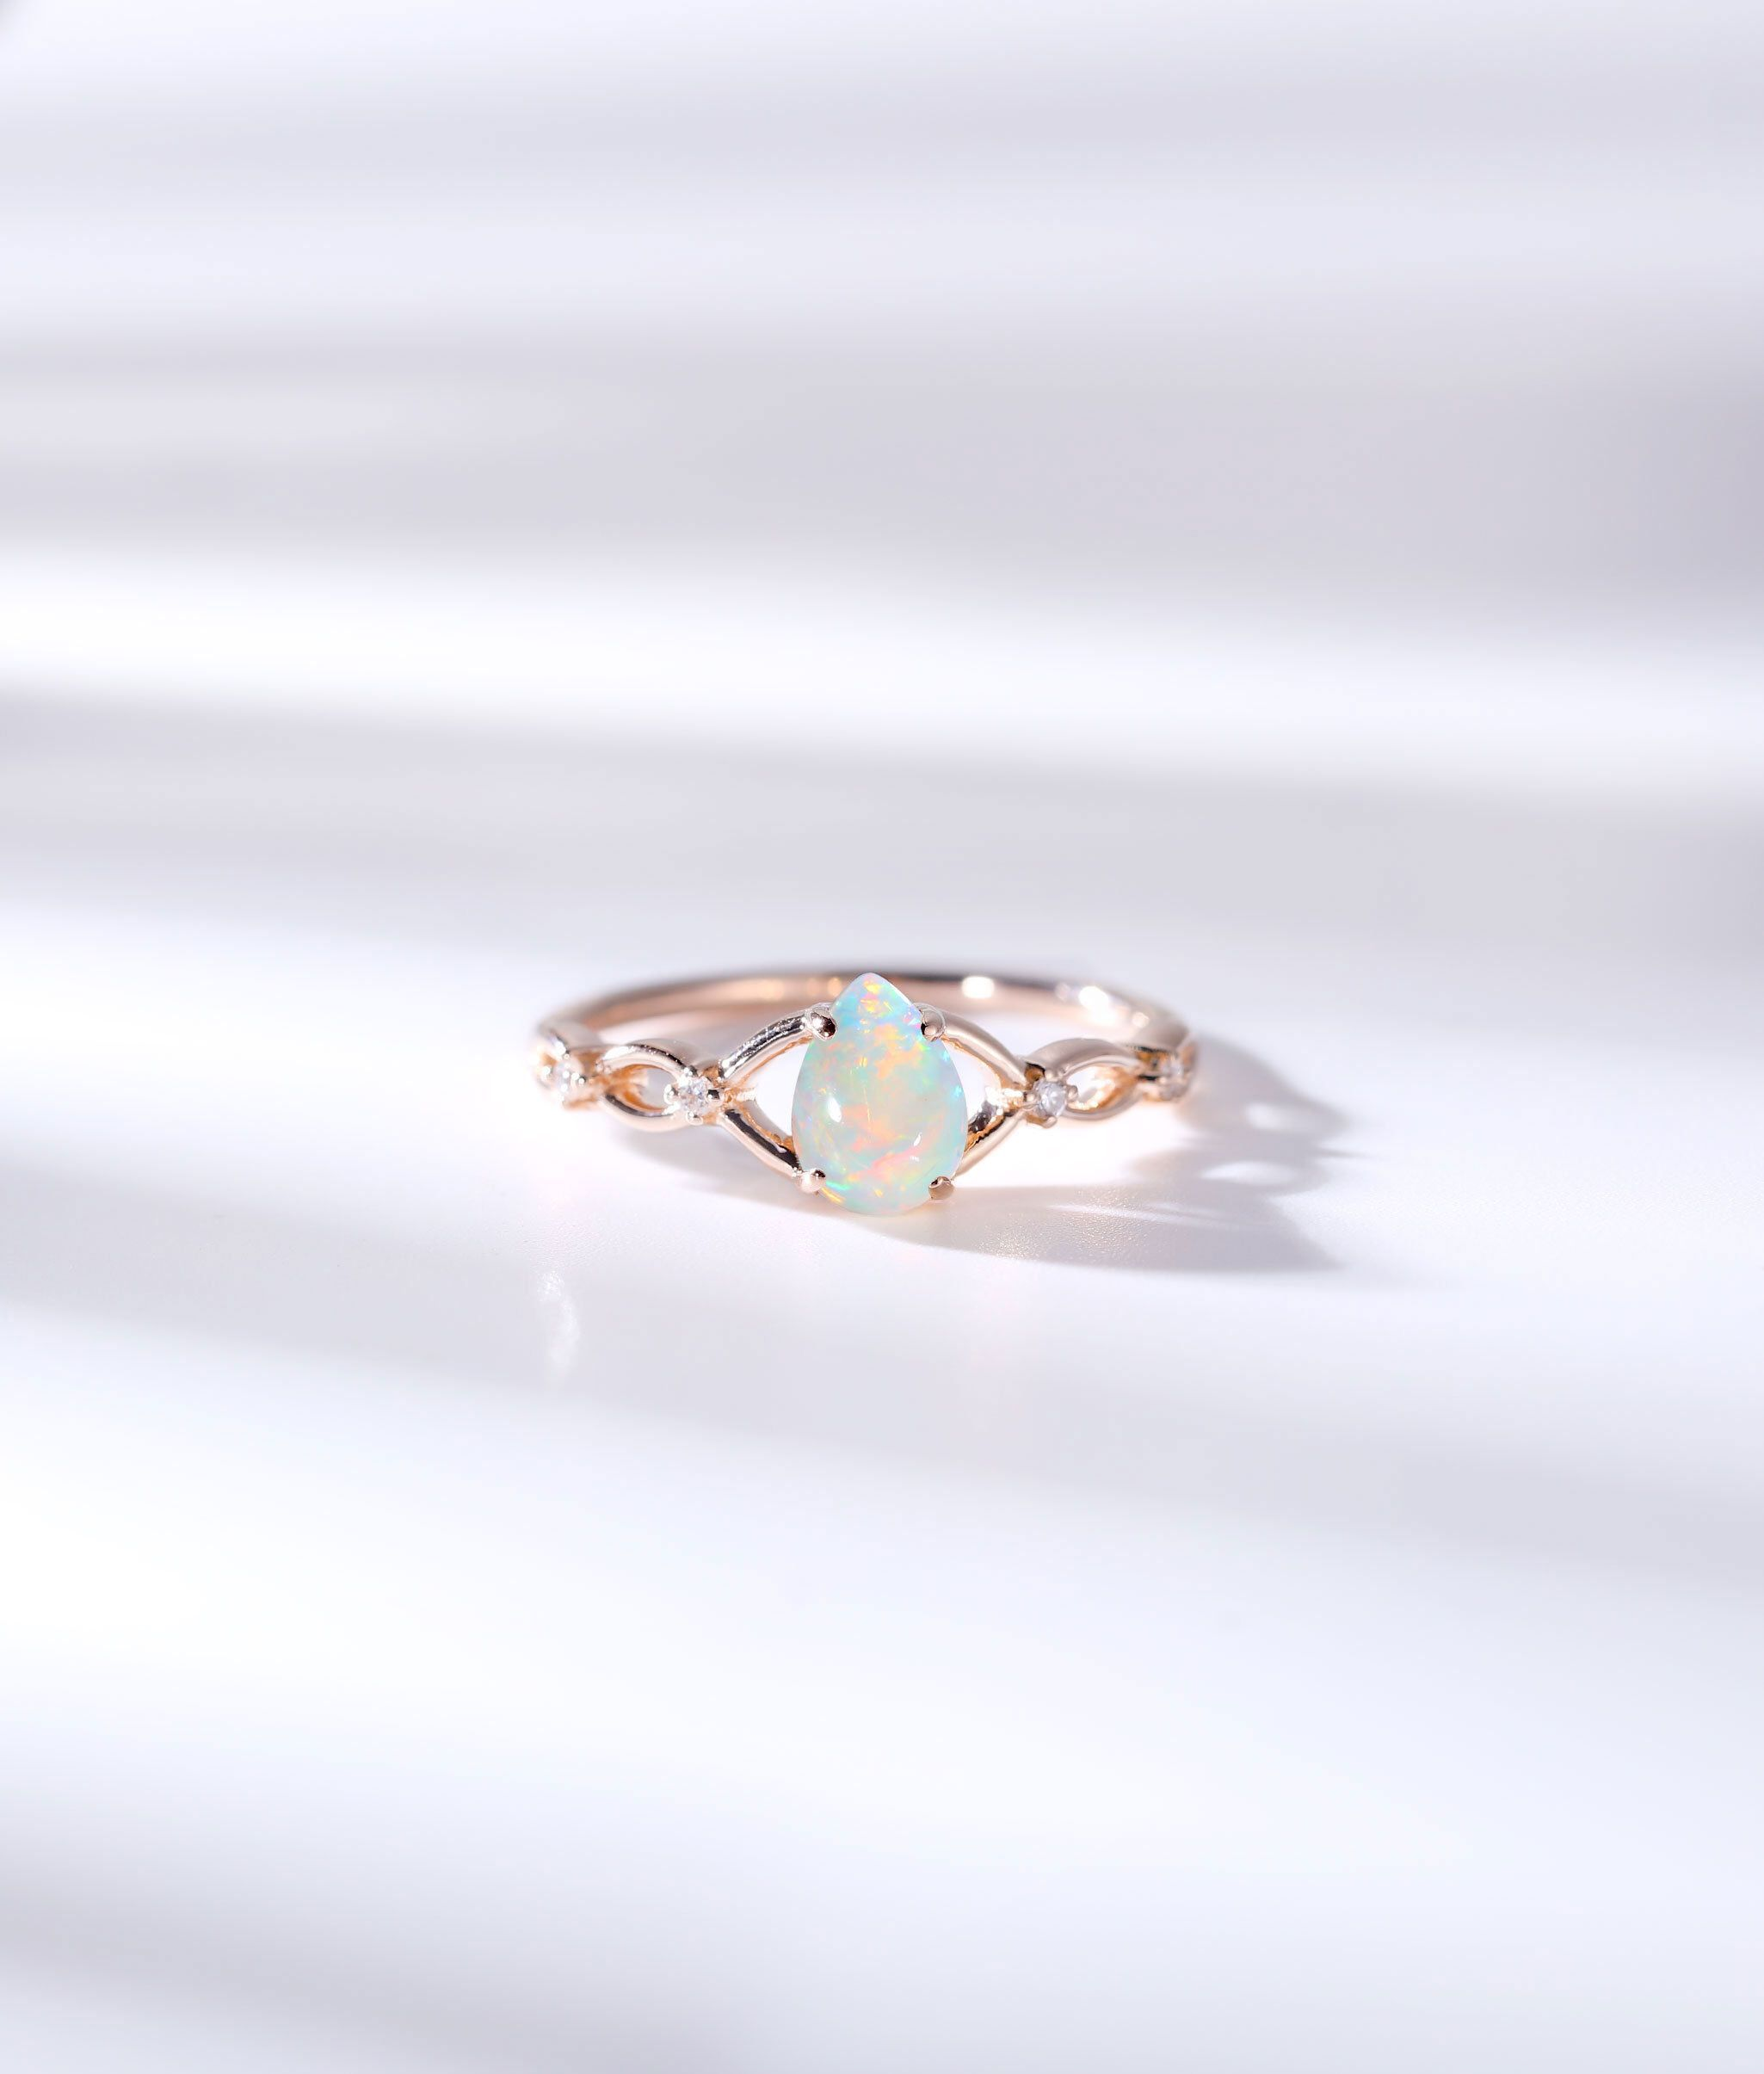 Pear shaped Opal engagement ring for women diamond celtic ring vintage rose gold wedding promise art deco unique anniversary gift for her Pear shaped Opal engagement ring...